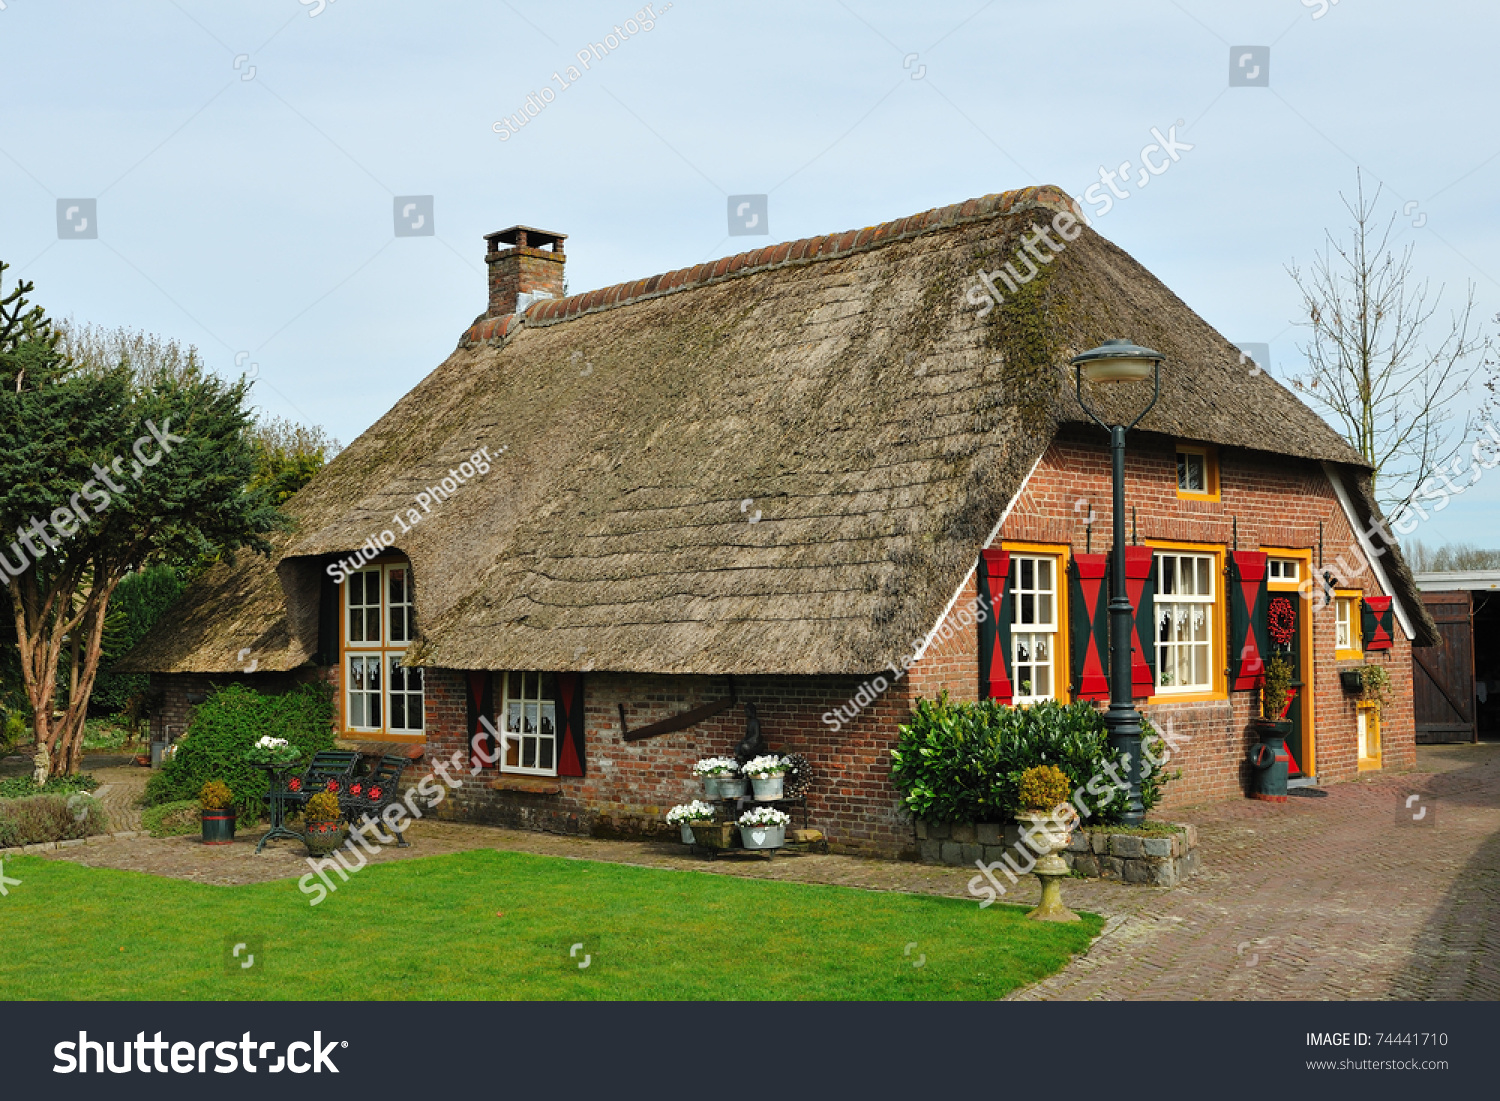 Dutch Farm House Whit Thatched Roof Stock Photo 74441710